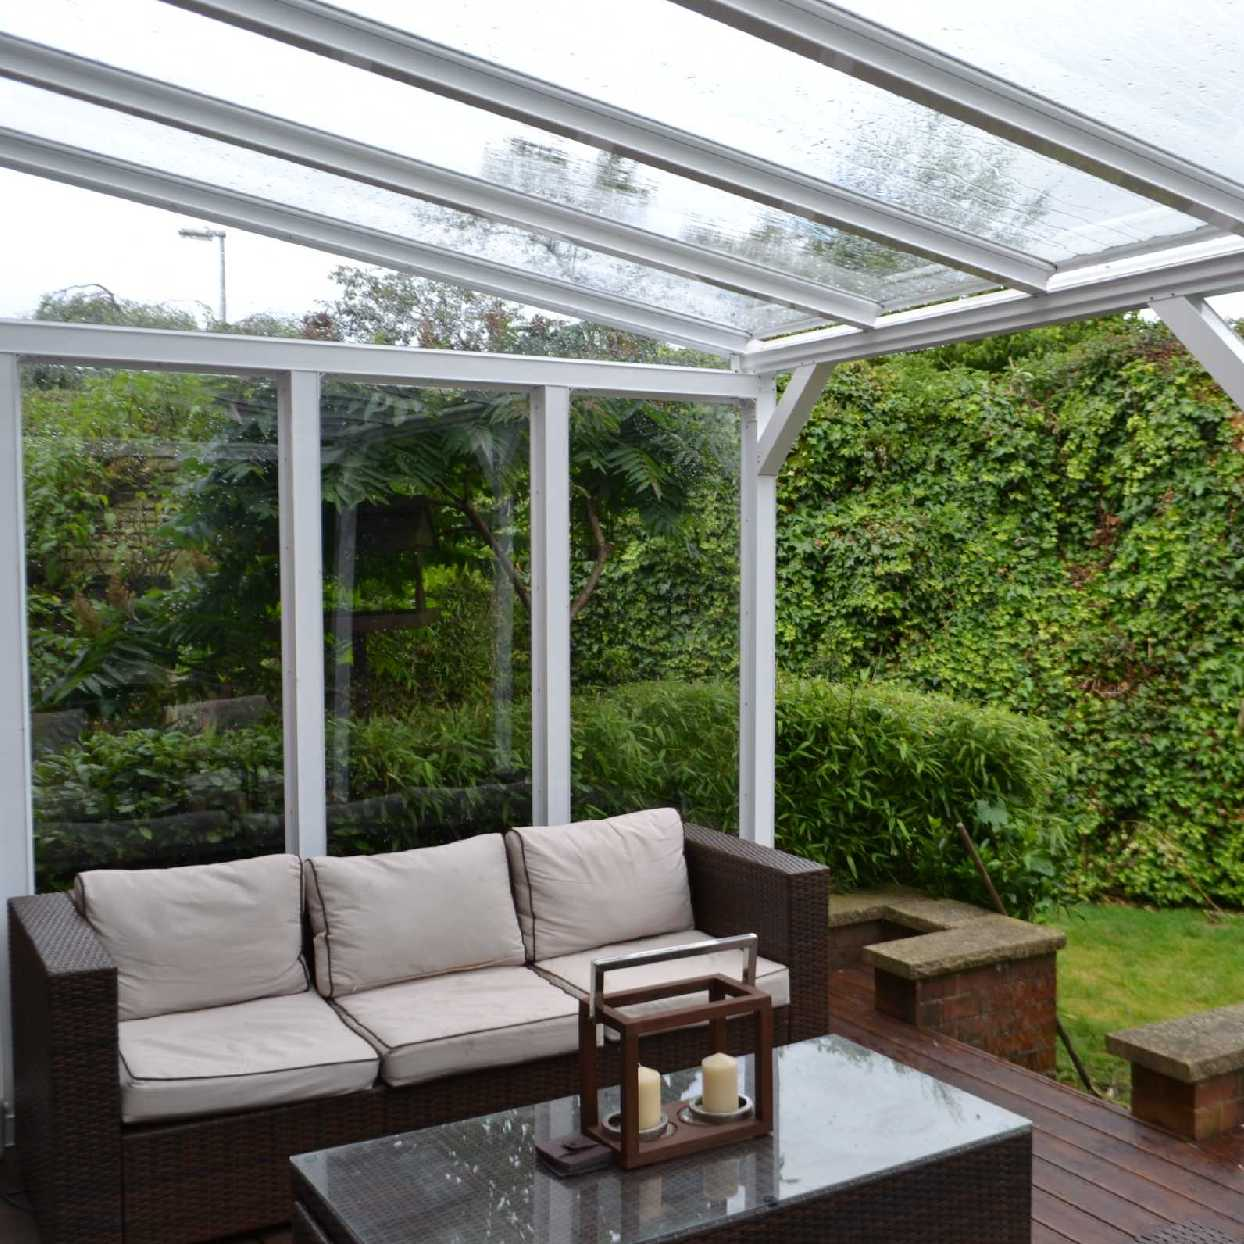 Great selection of Omega Smart Lean-To Canopy with 16mm Polycarbonate Glazing - 3.5m (W) x 4.5m (P), (3) Supporting Posts